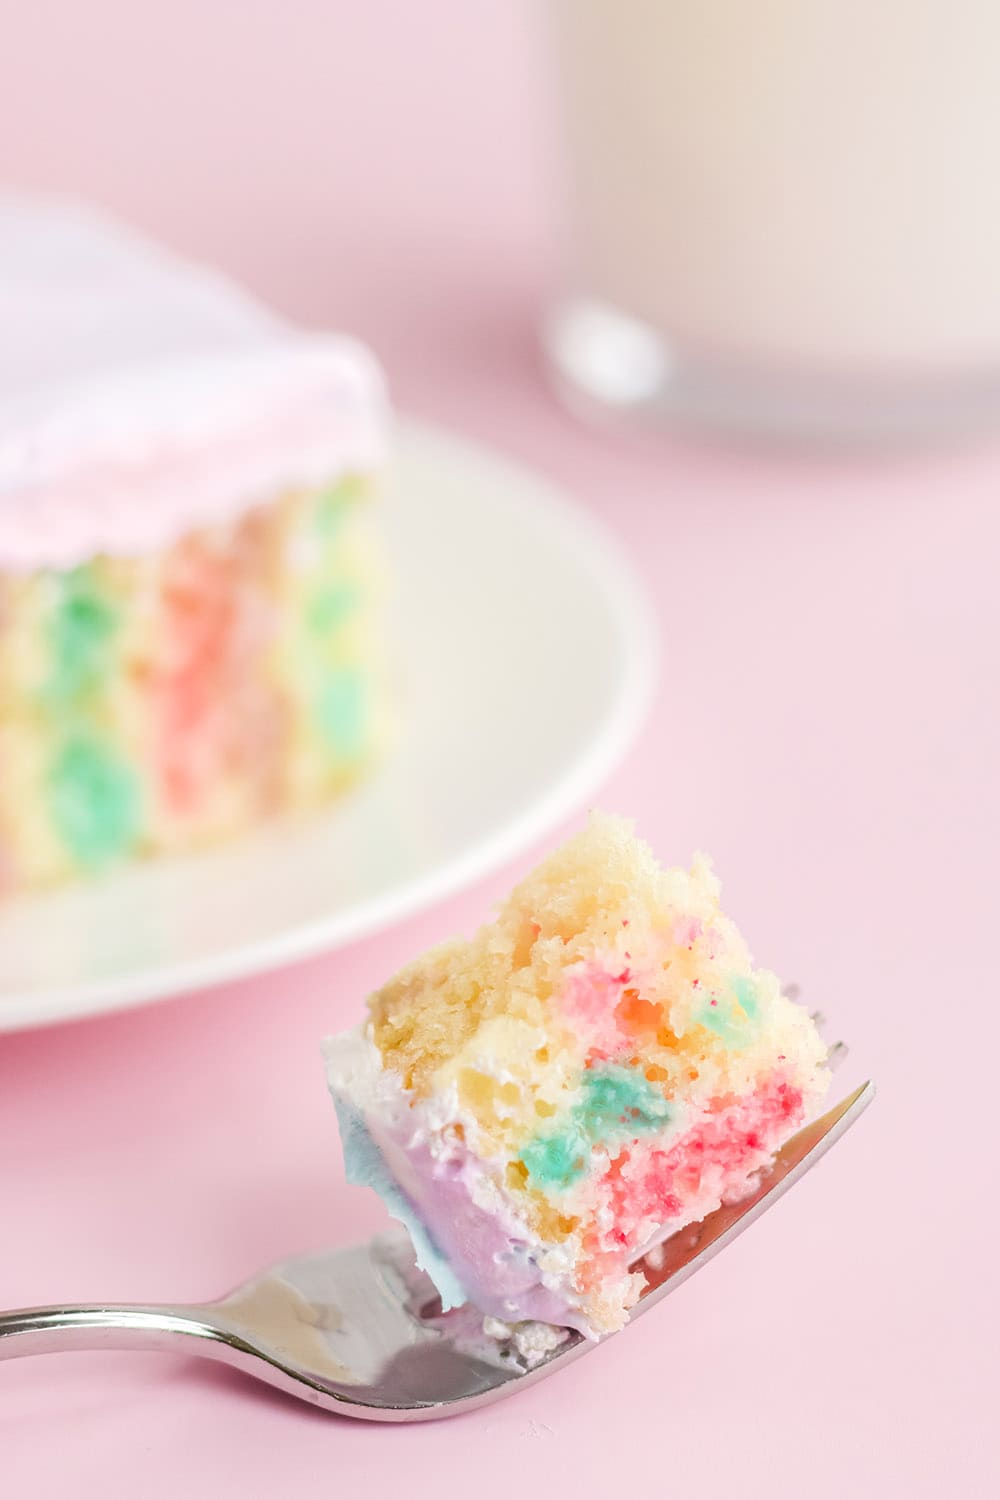 Fork with cake on it with a slice of poke cake on a plate.